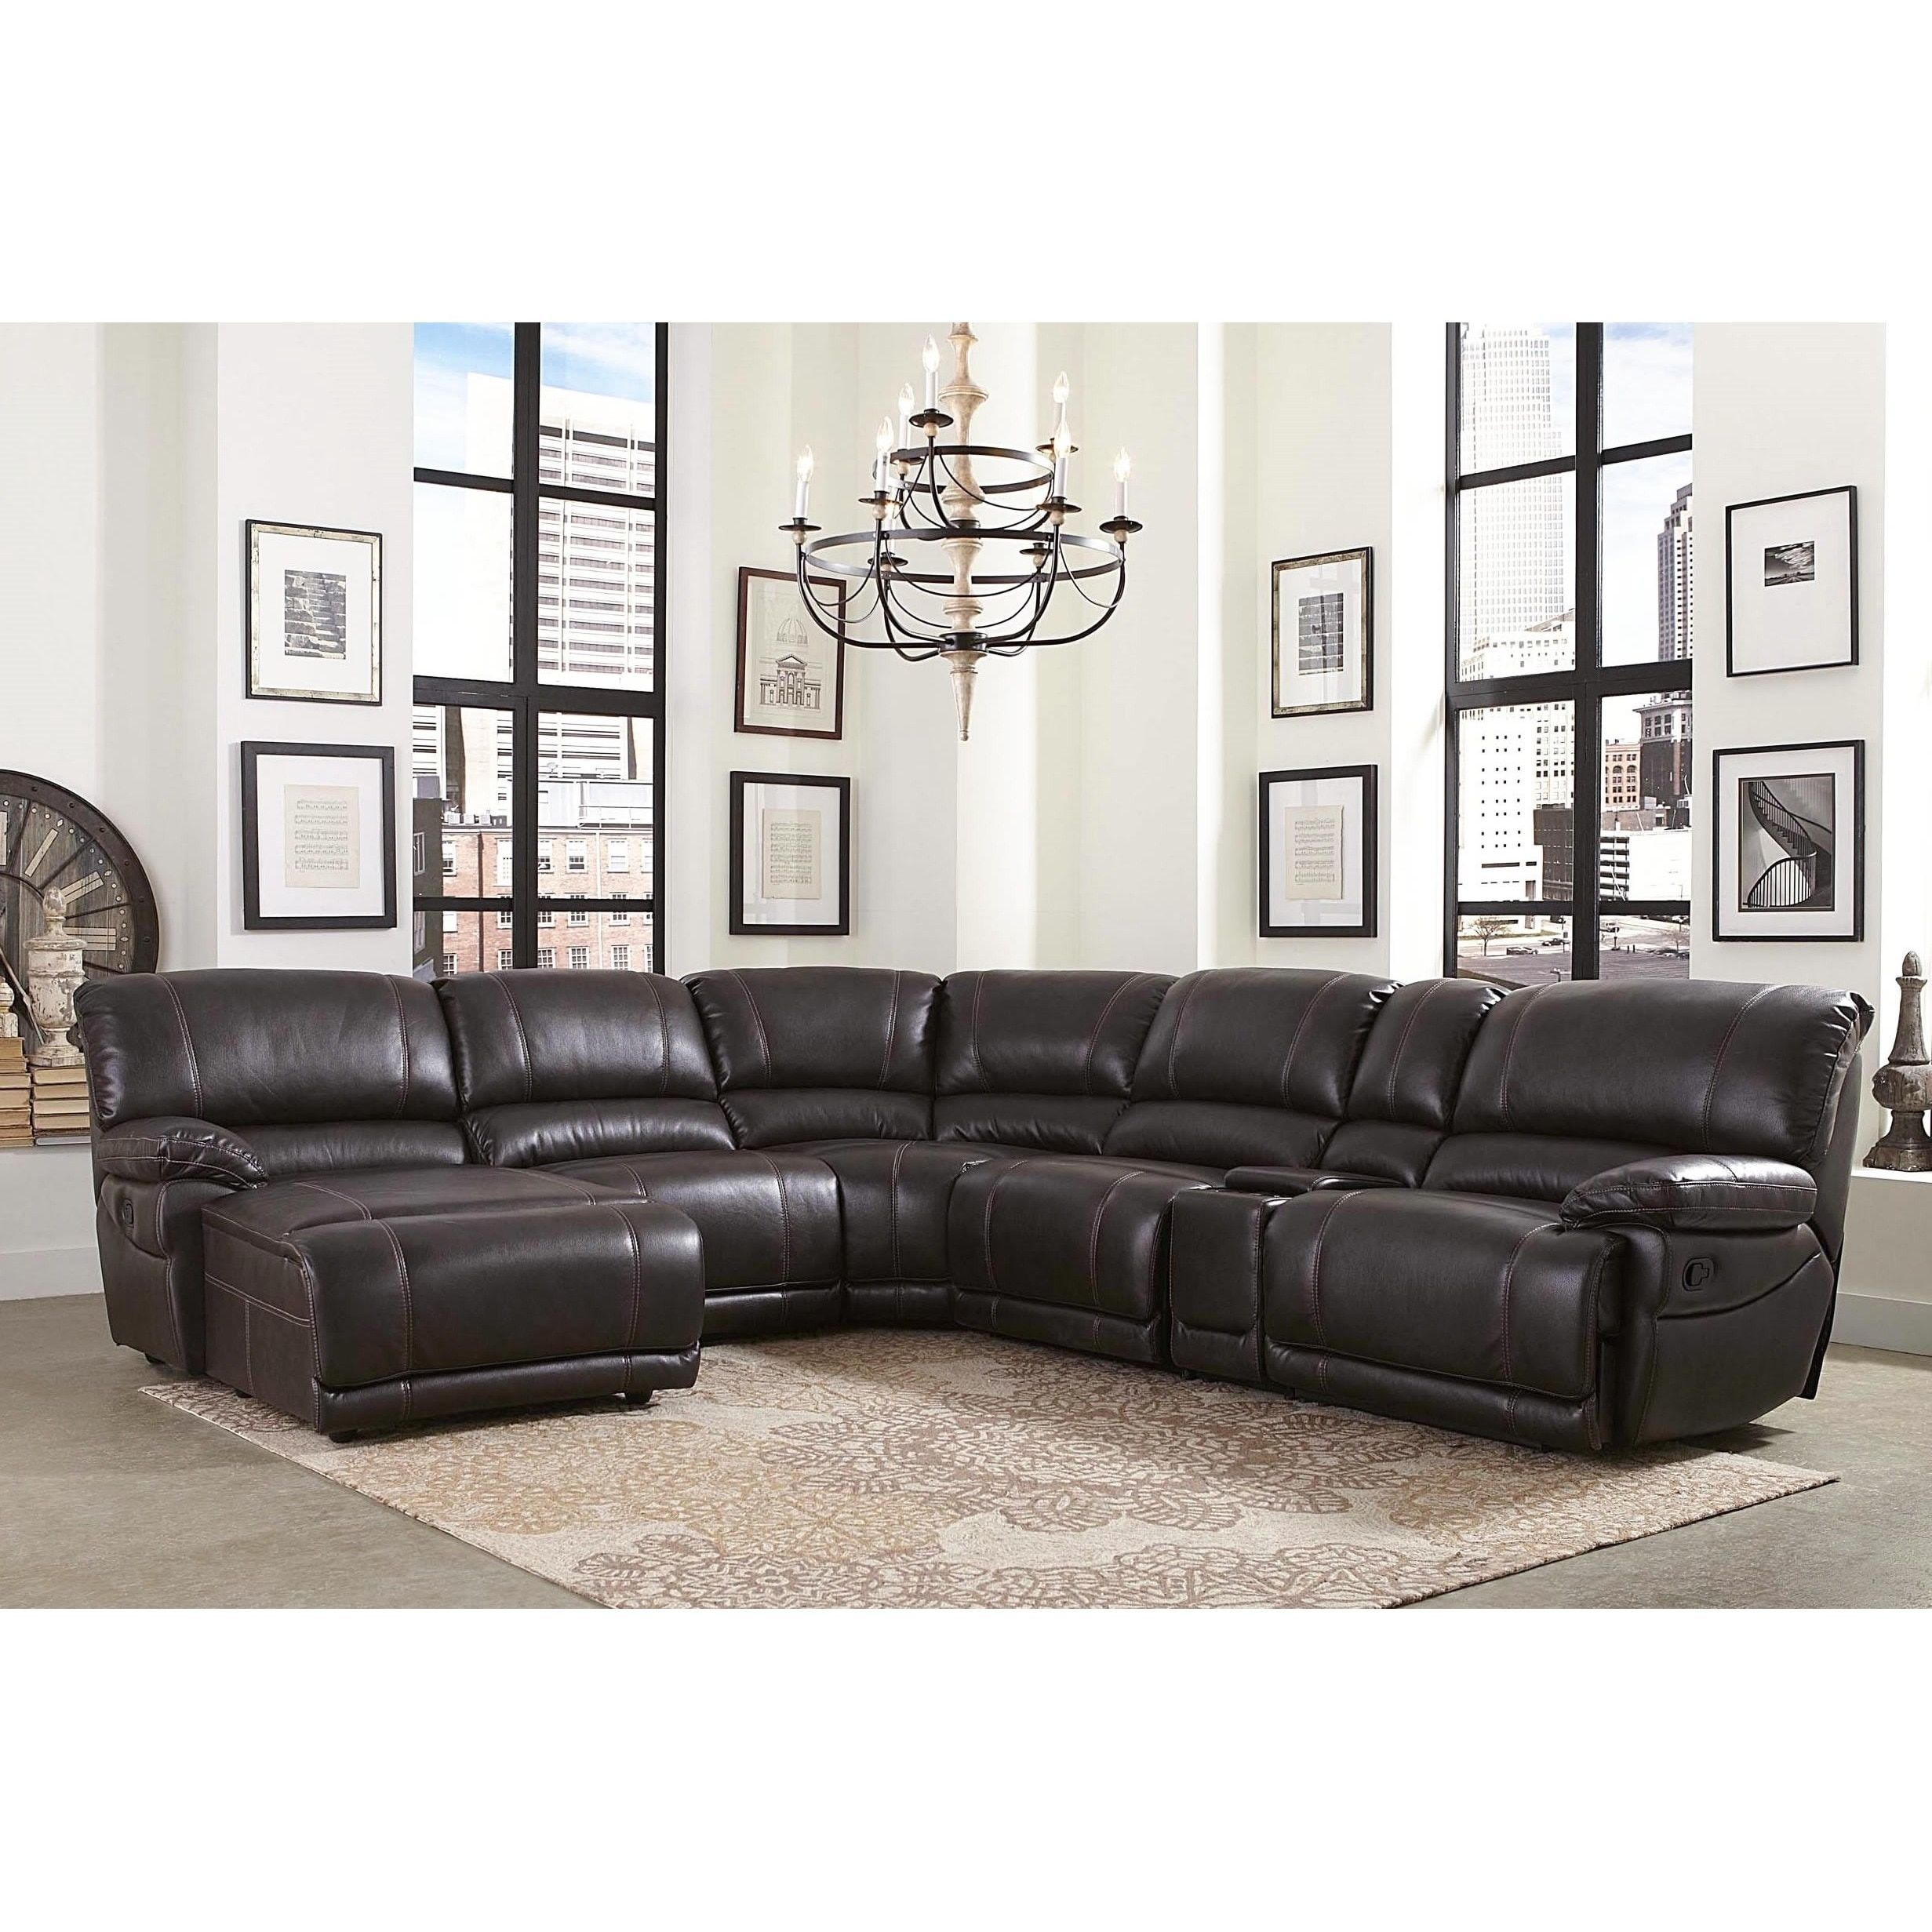 Enjoyable Abbyson Cooper 6 Piece Dark Brown Sectional Sofa Brown Caraccident5 Cool Chair Designs And Ideas Caraccident5Info